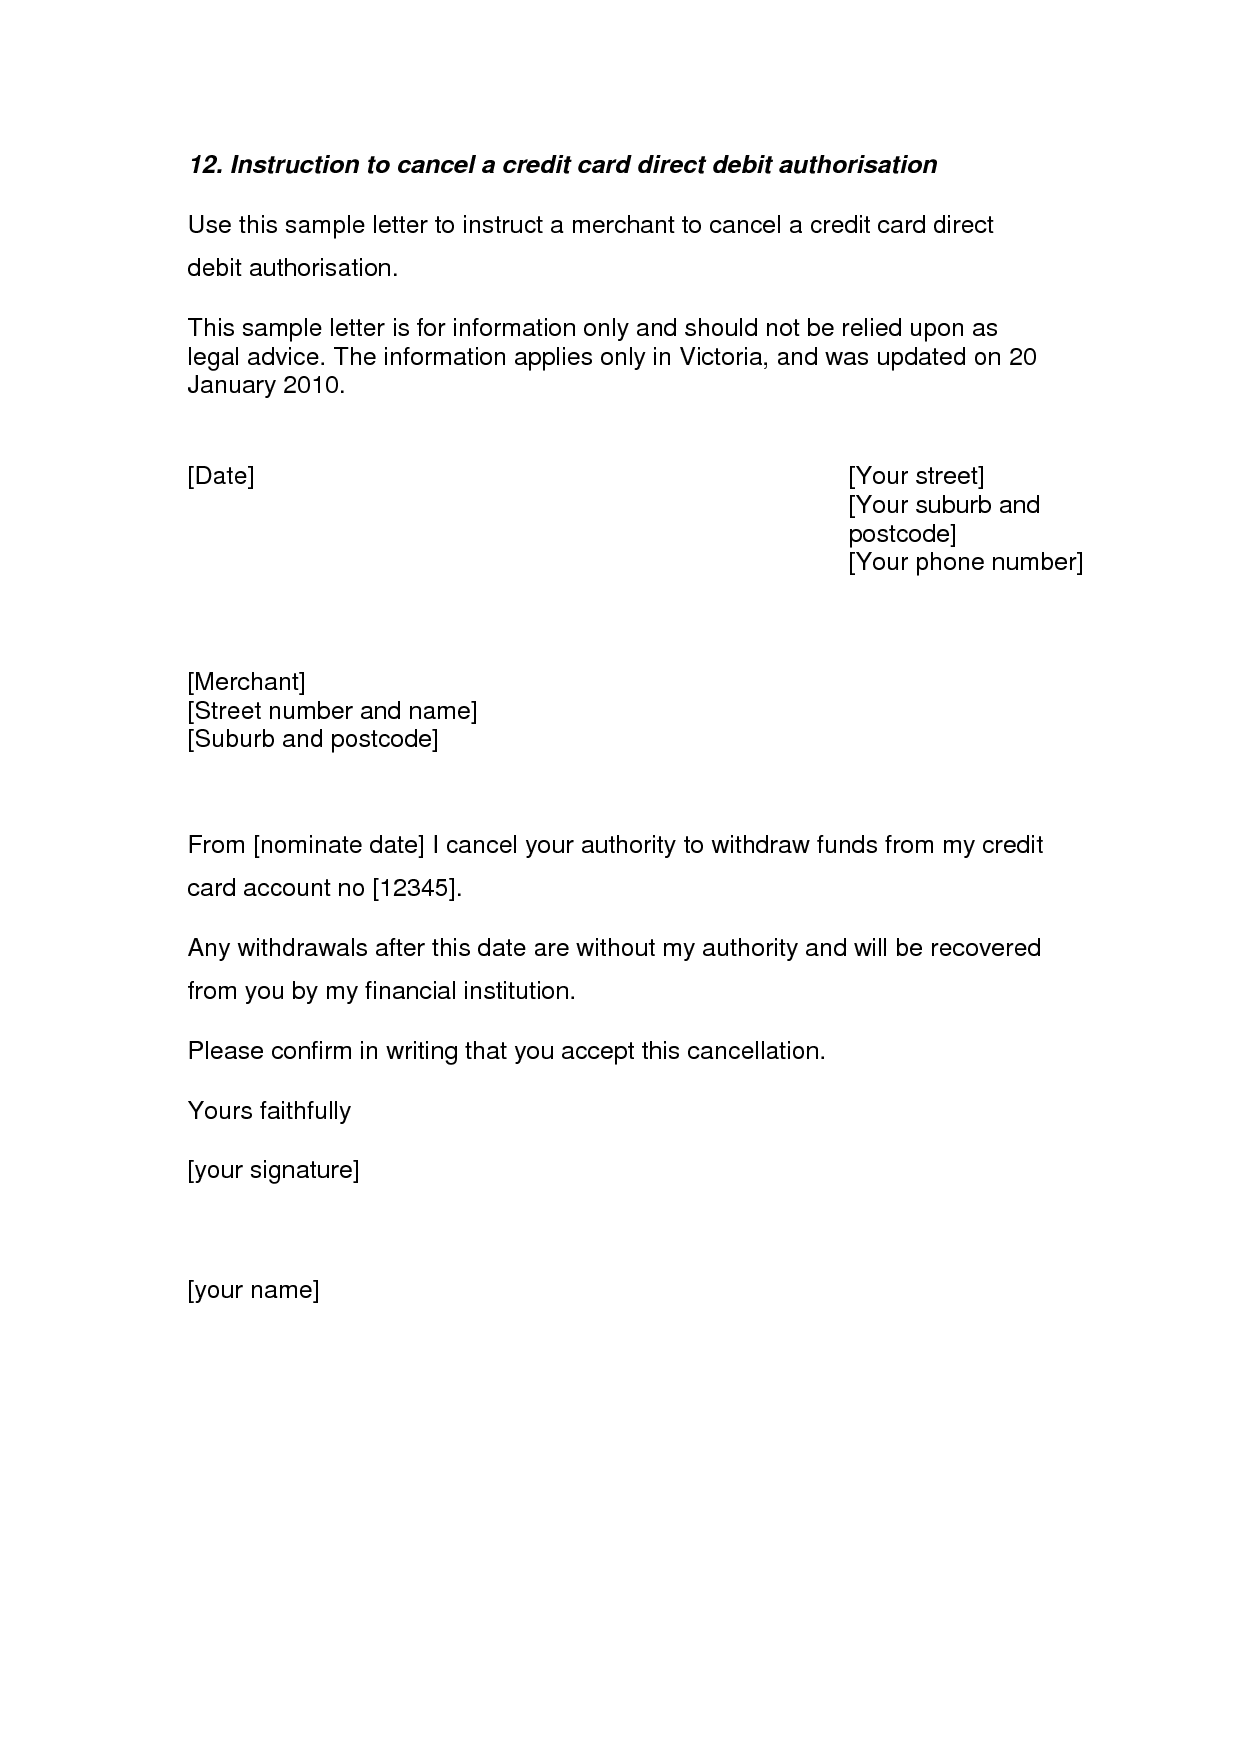 Credit Card Cancellation letter - A Credit card cancellation letter ...